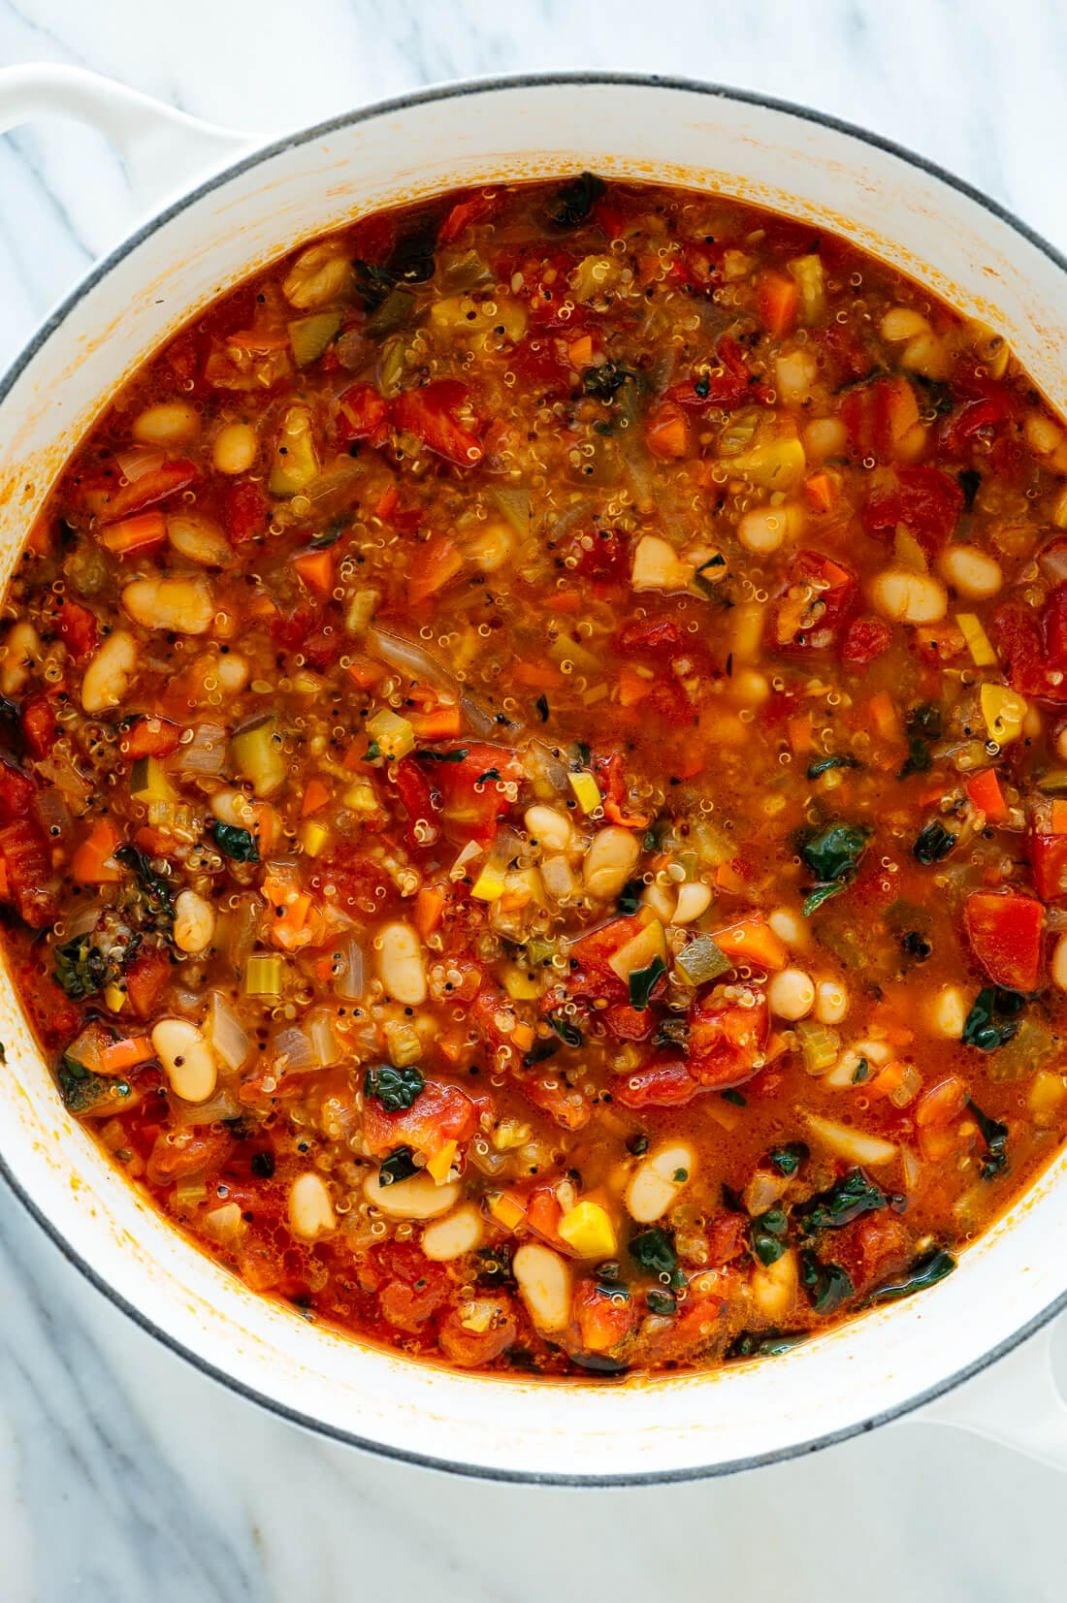 Quinoa Vegetable Soup Recipe - Cookie and Kate - Cooking Quinoa Soup